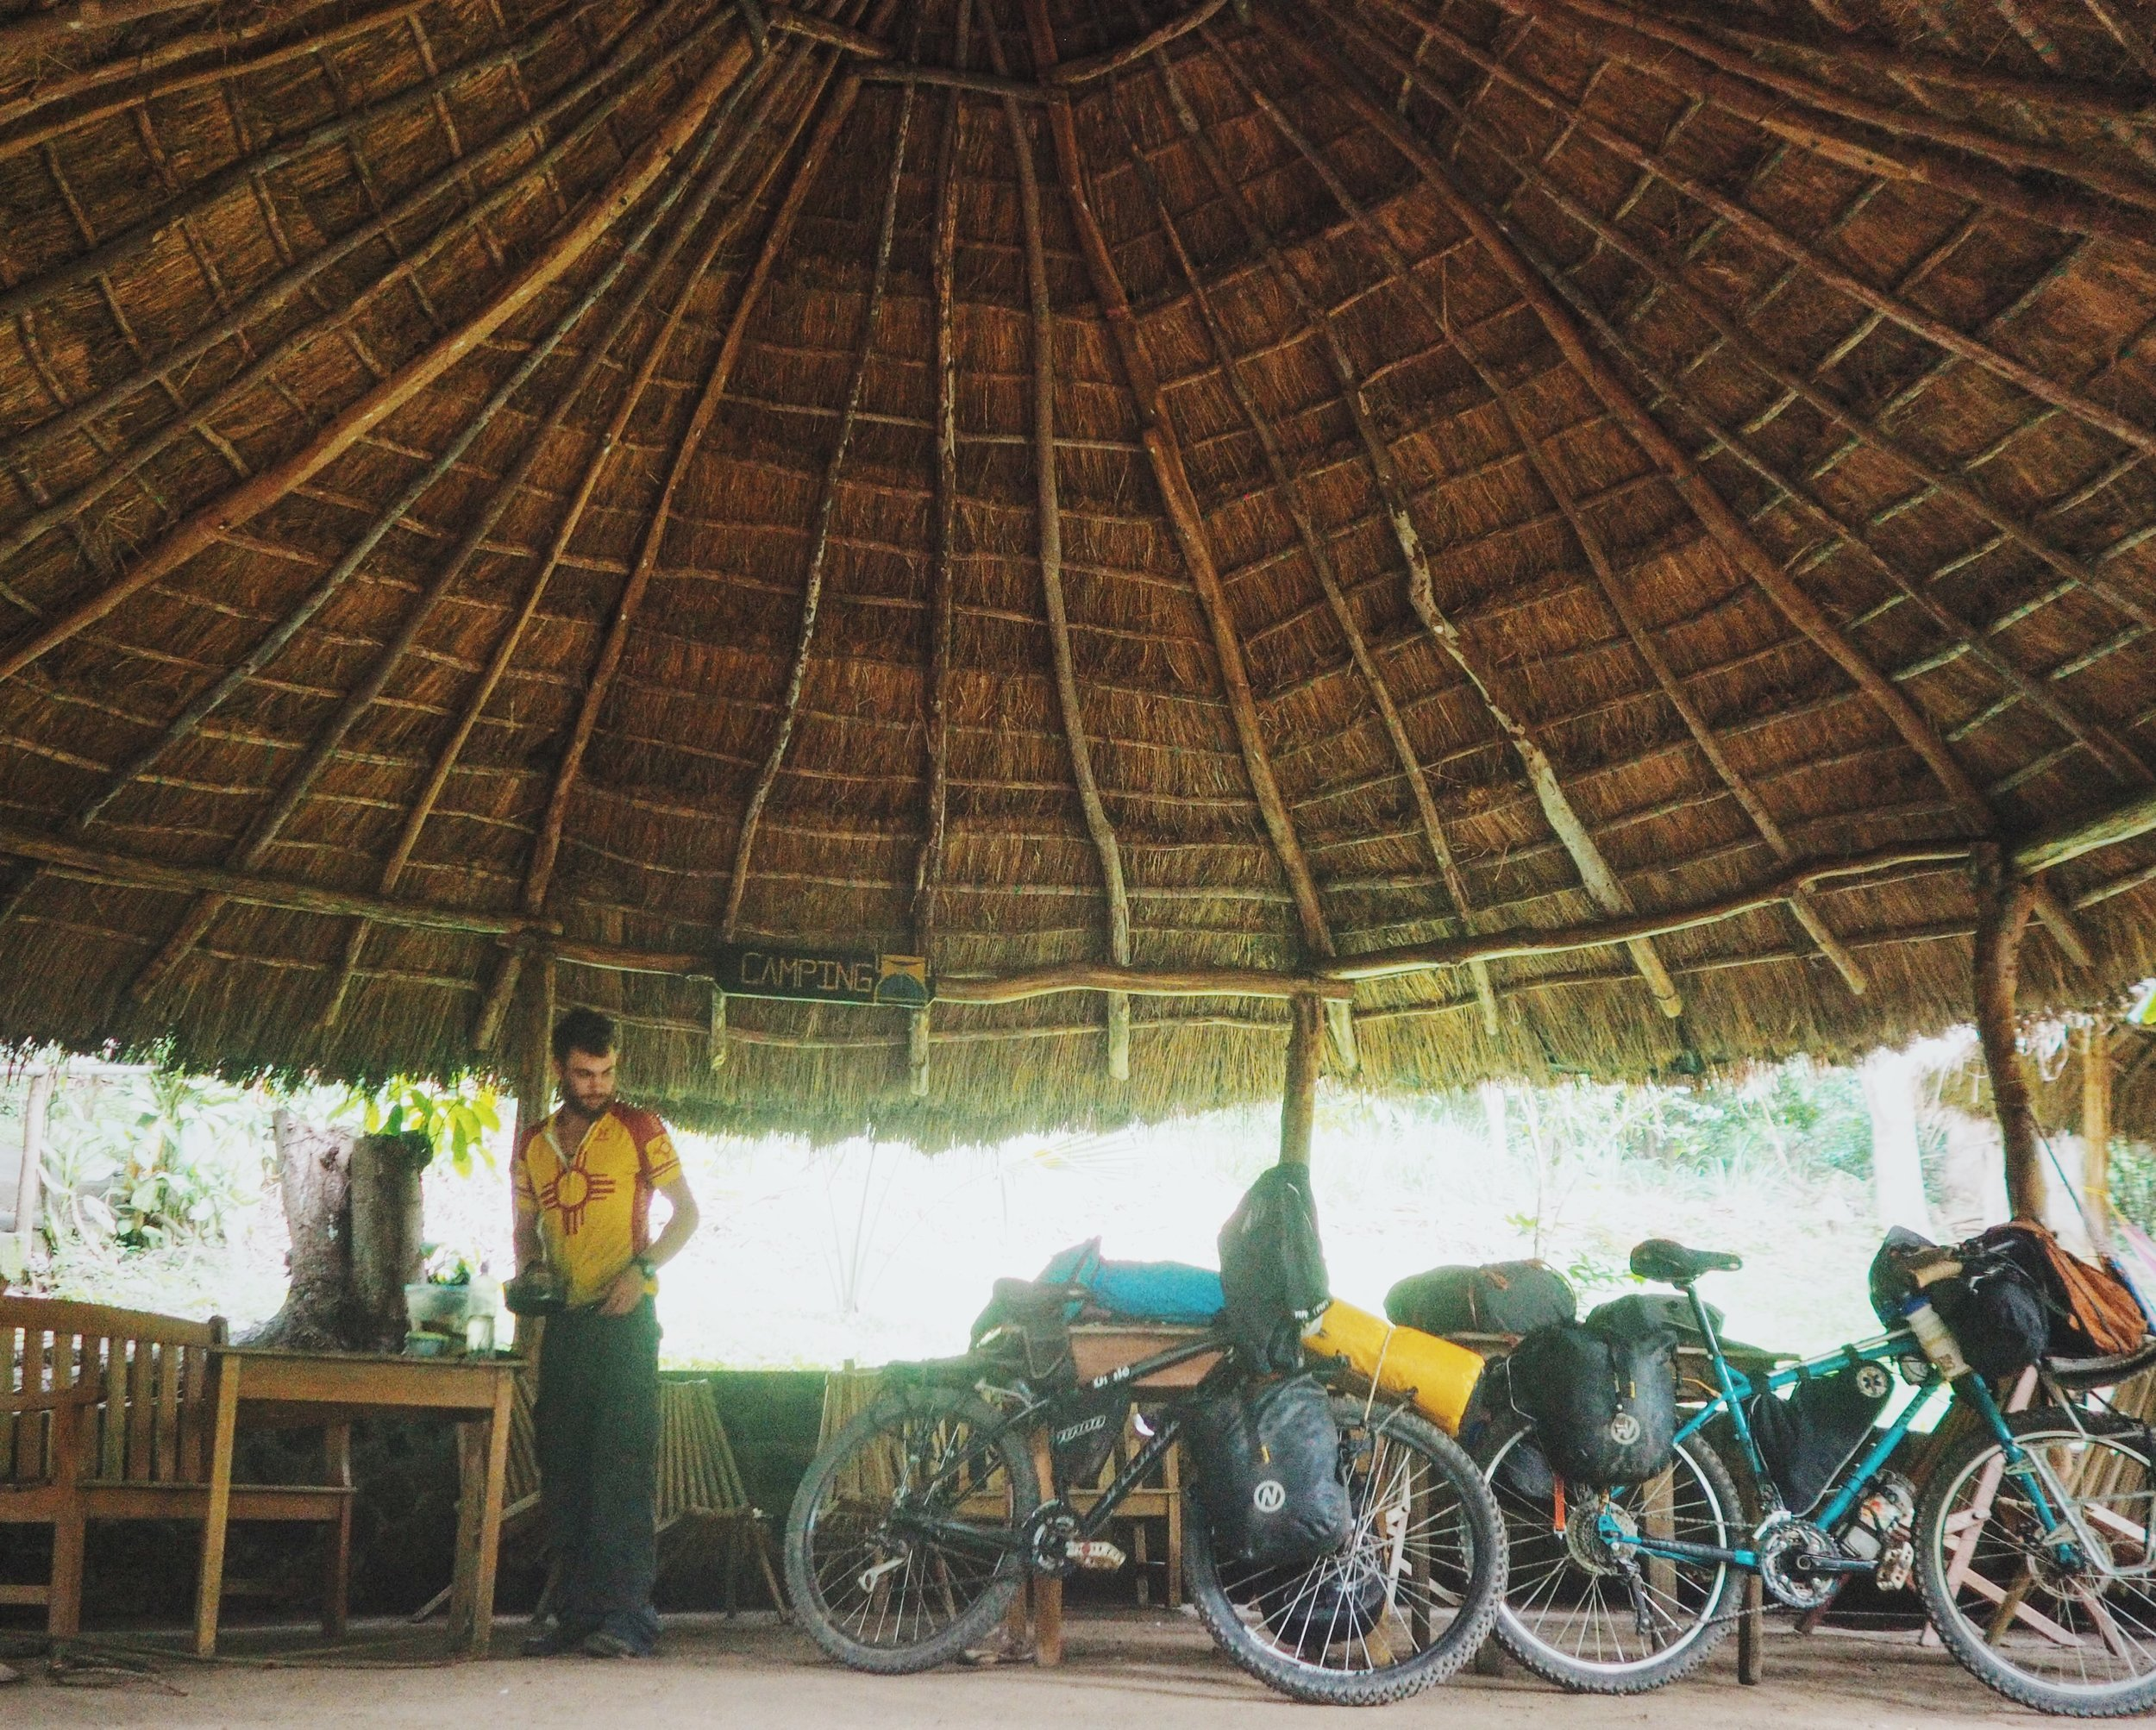 Around 5pm or so, all the tourists left the cenote and we had the place to ourselves! We pitched our tent beneath a palapa. It's rare to have a table and chairs at our campsite, but we took full advantage!